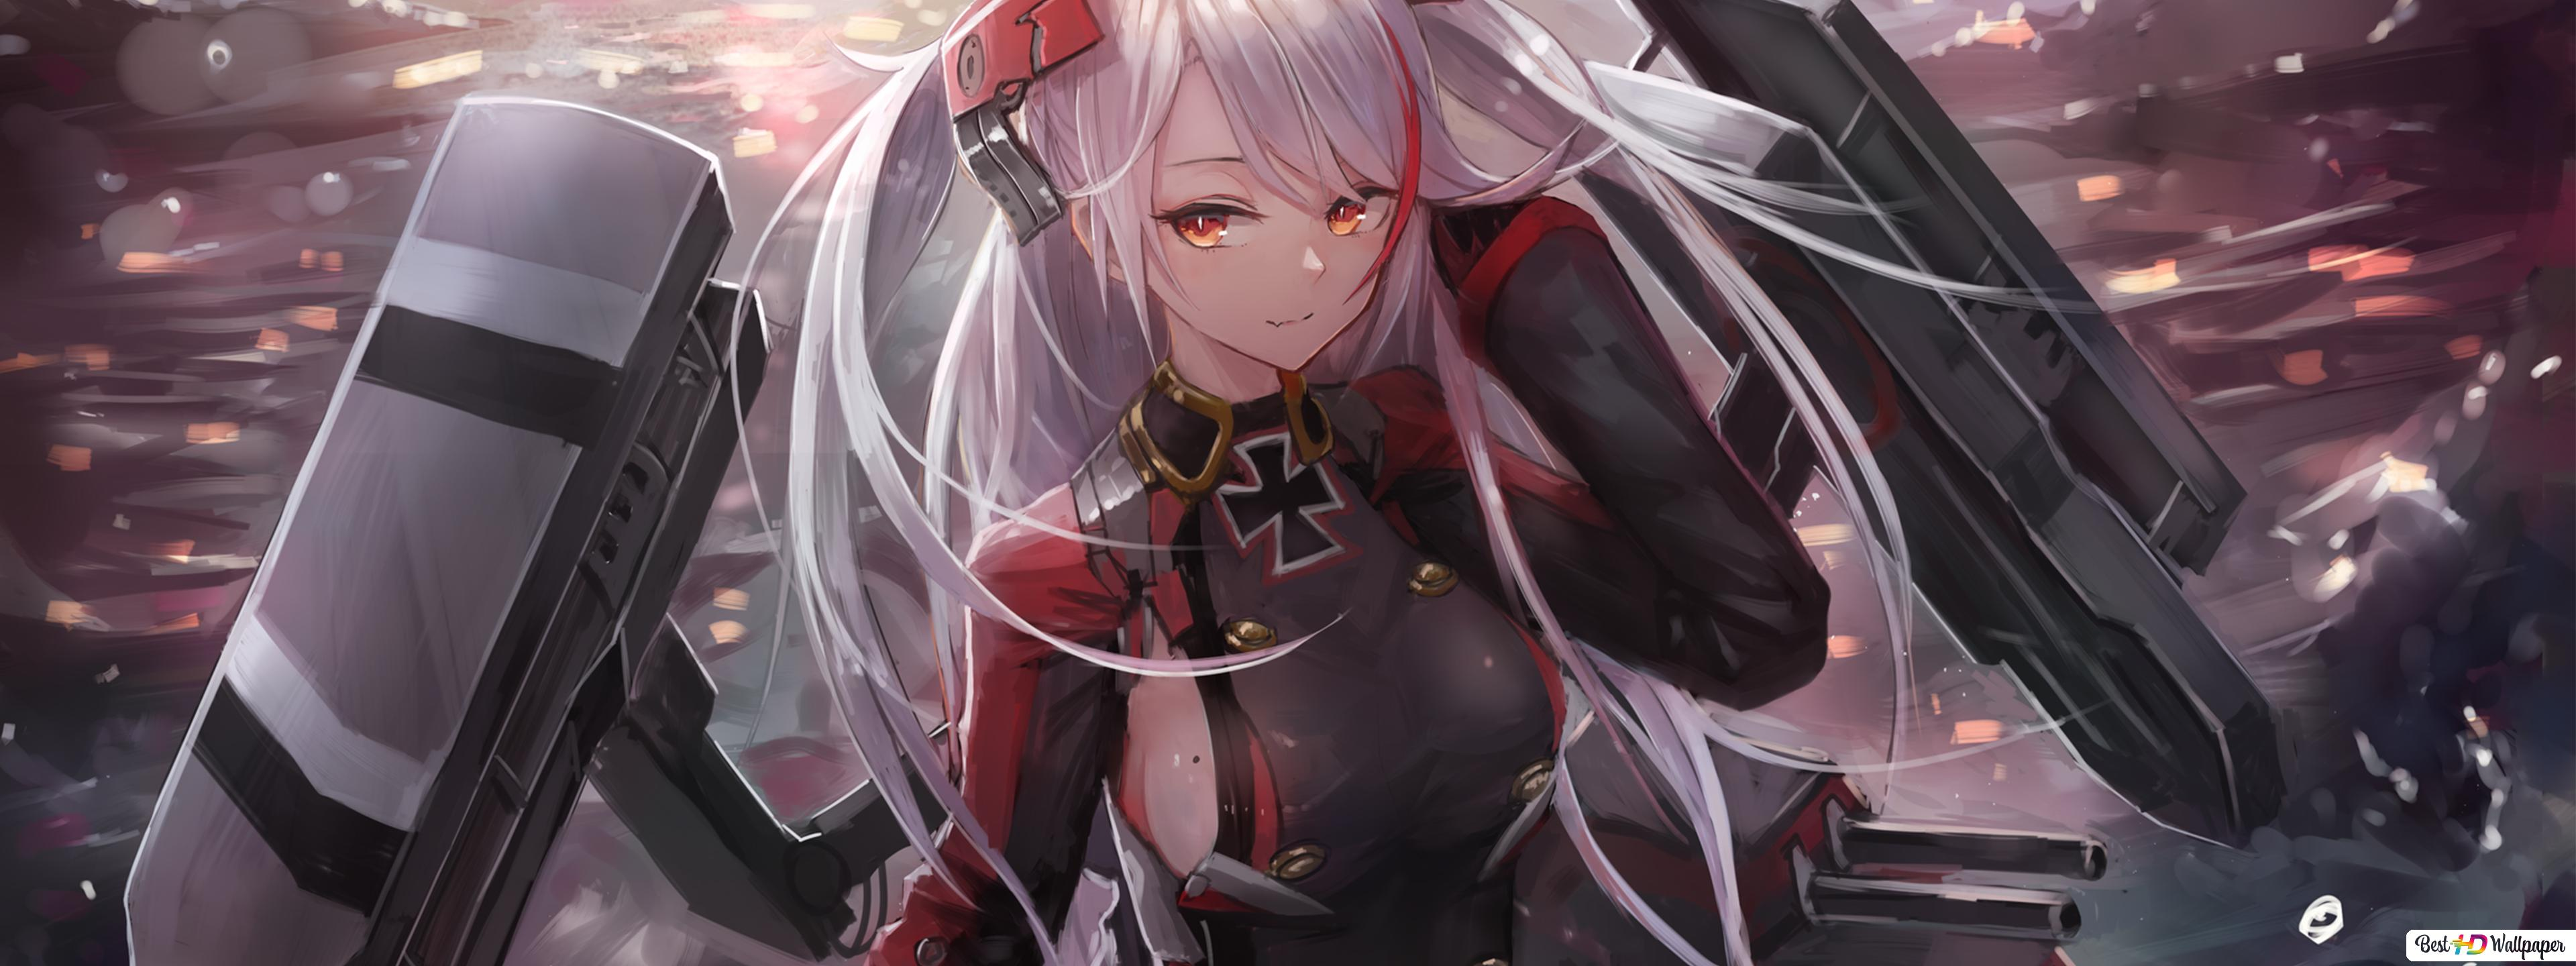 Azur Lane Prinz Eugen Hd Wallpaper Download